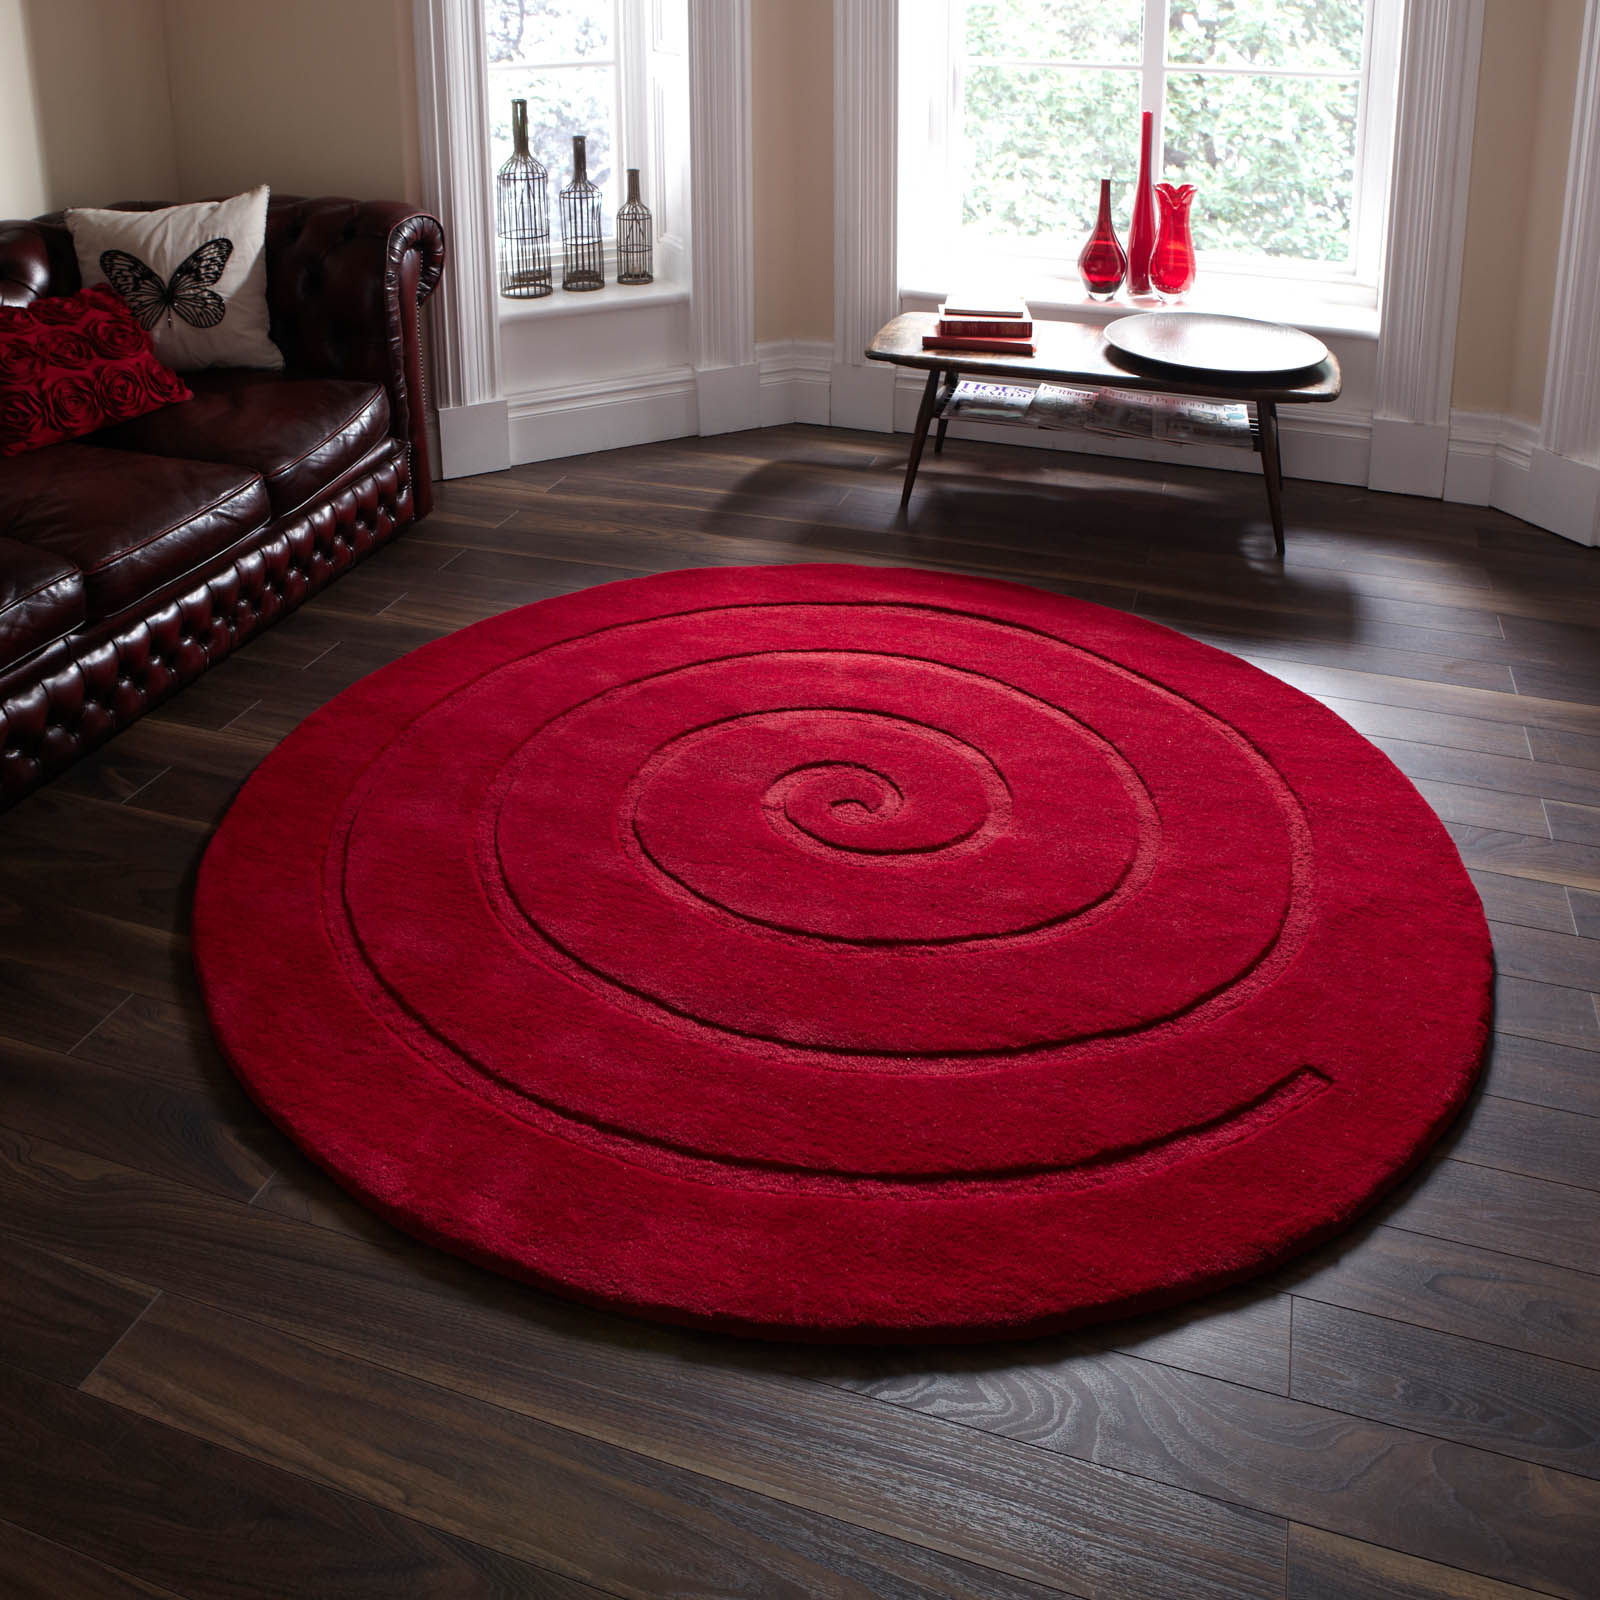 Spiral Circular Wool Rugs In Ivory Buy Online From The Rug